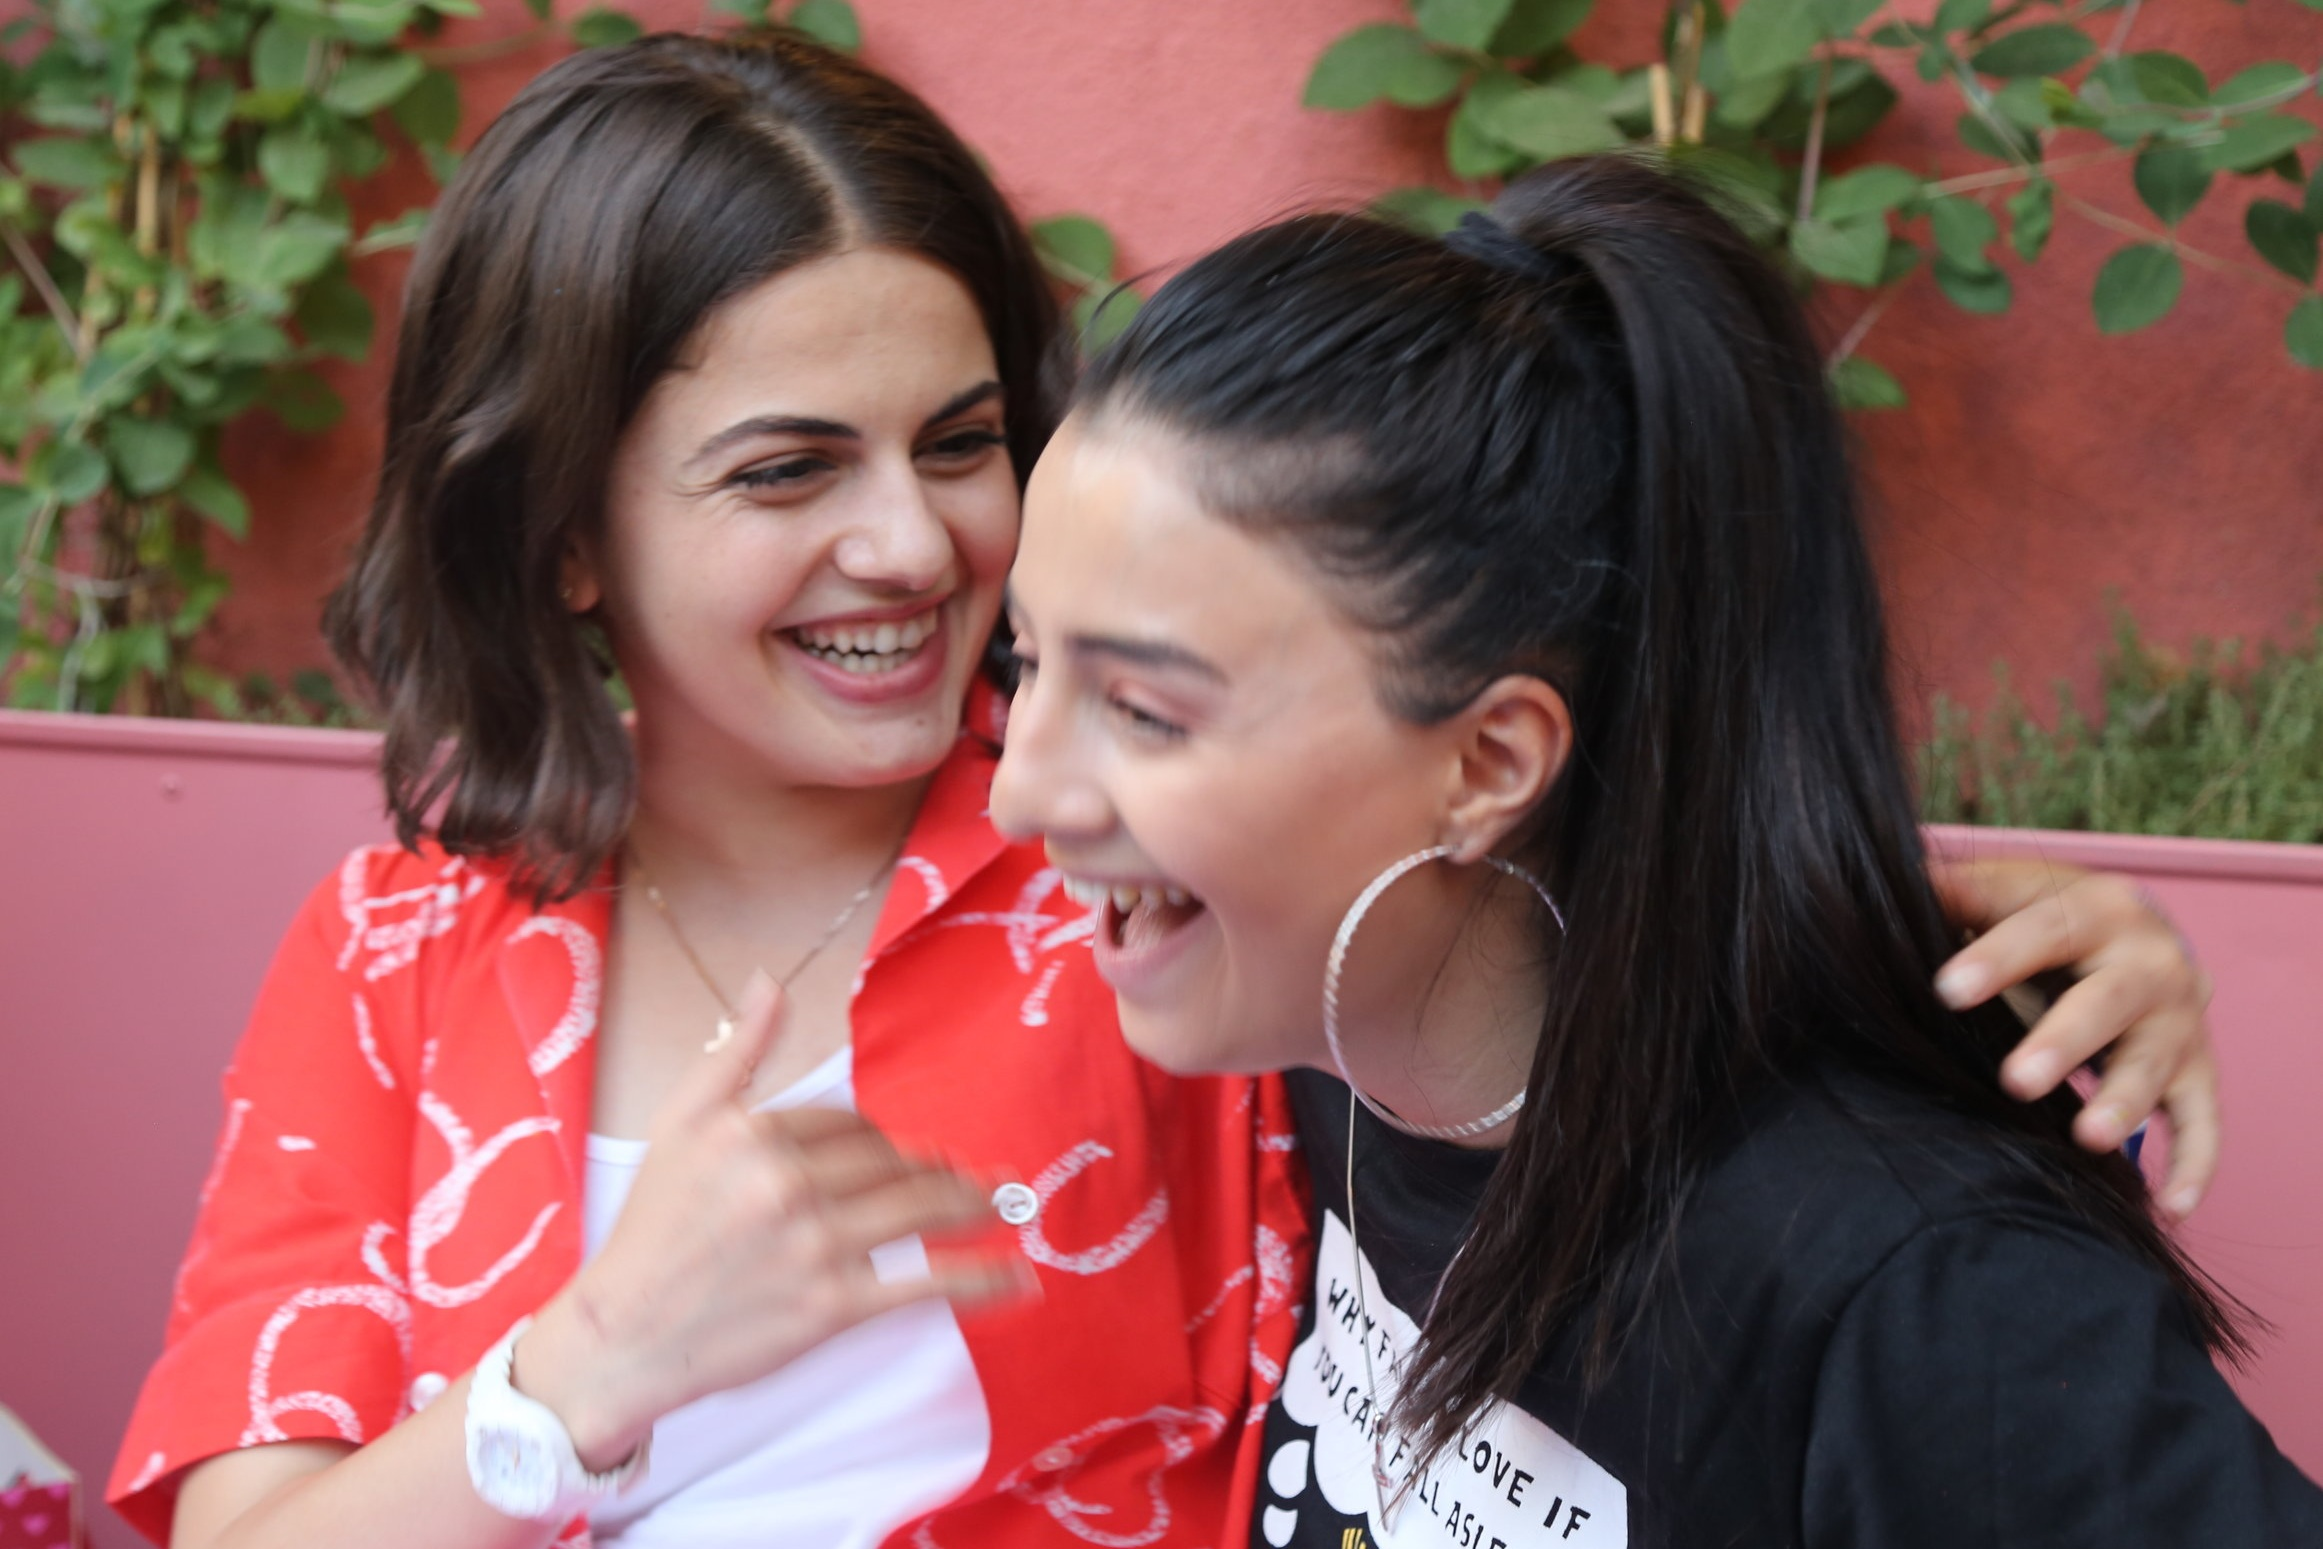 what's a kooyrig? - As the Armenian word for sister, the word kooyrig embodies the wholesome love that has been passed through Armenian women for generations.This endearing term has been used for centuries in the Armenian language as a way to call out to not only relatives, but friends as well. A kooyrig does not have to be a sister by blood, but by spirit.Kooyrigs click. They connect. They care.We are kooyrigs, and this is our community.